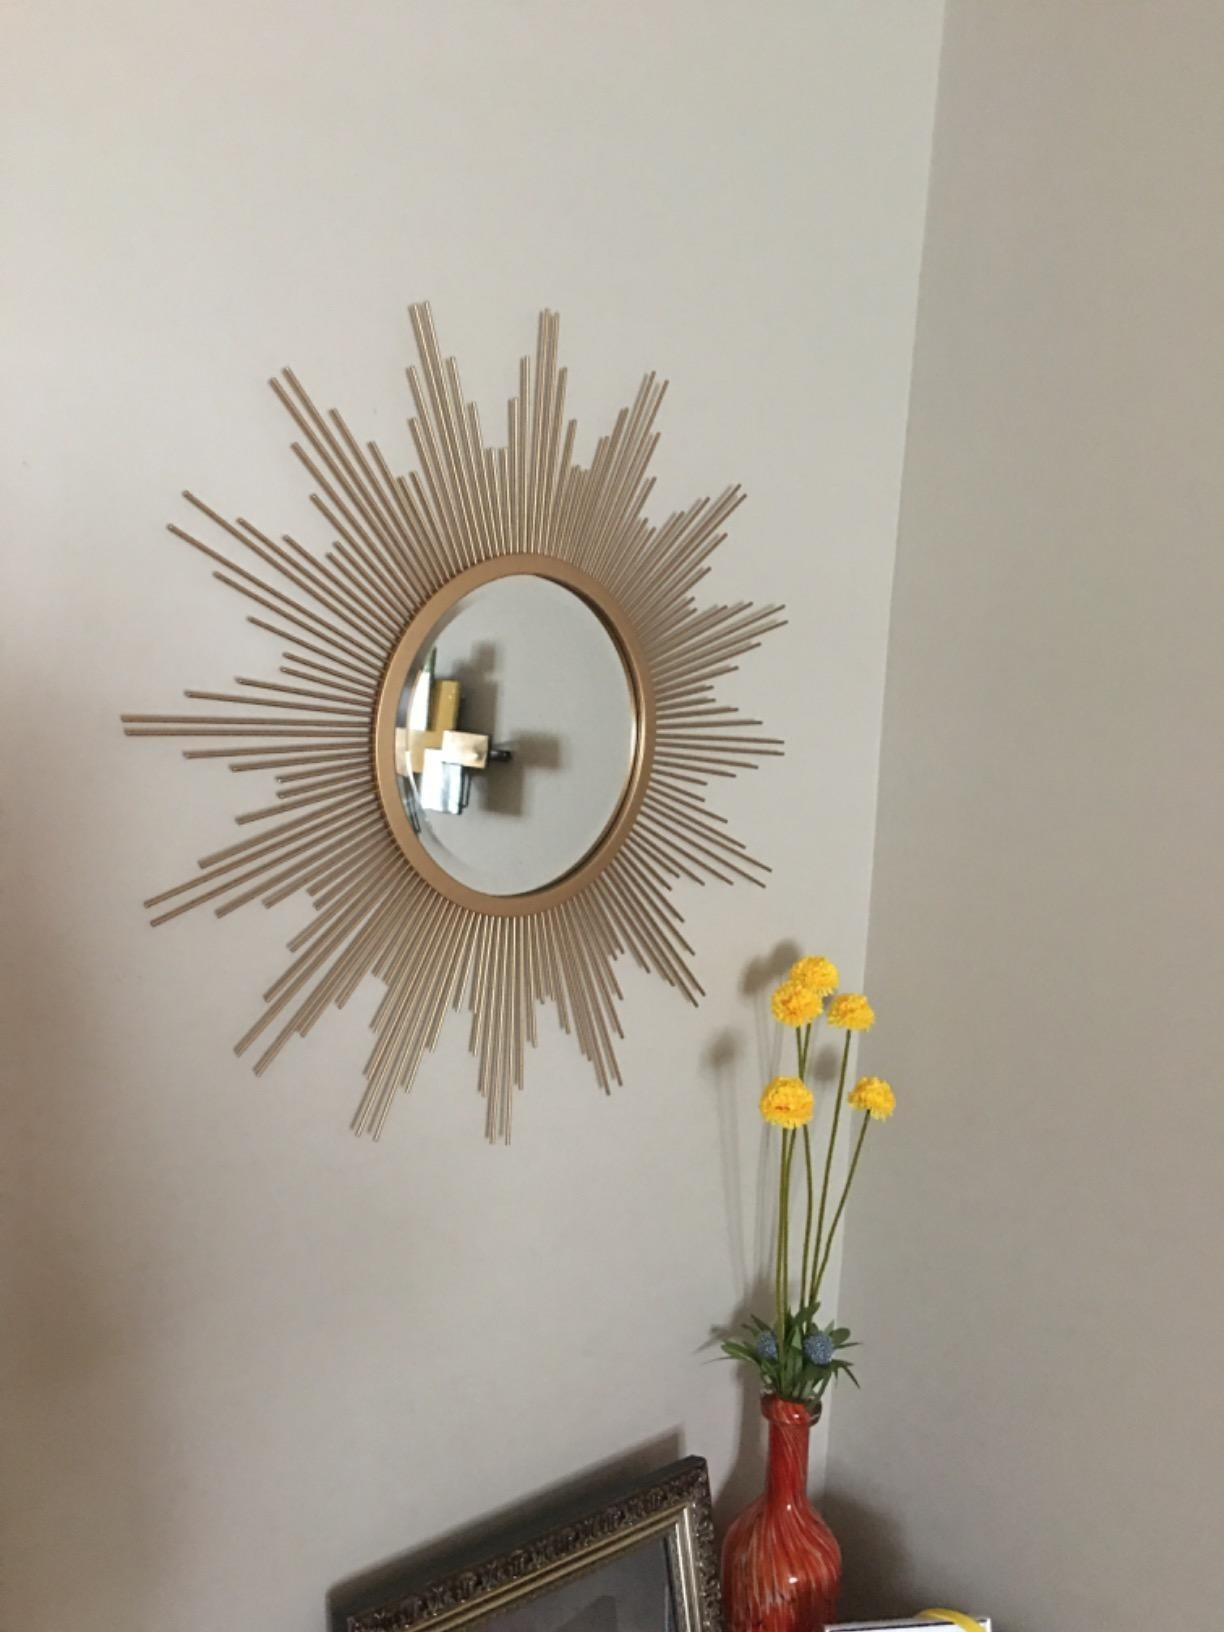 reviewer image of the stonebriar sunburst wall mirror mounted on a wall above an accent table with flowers in a vase